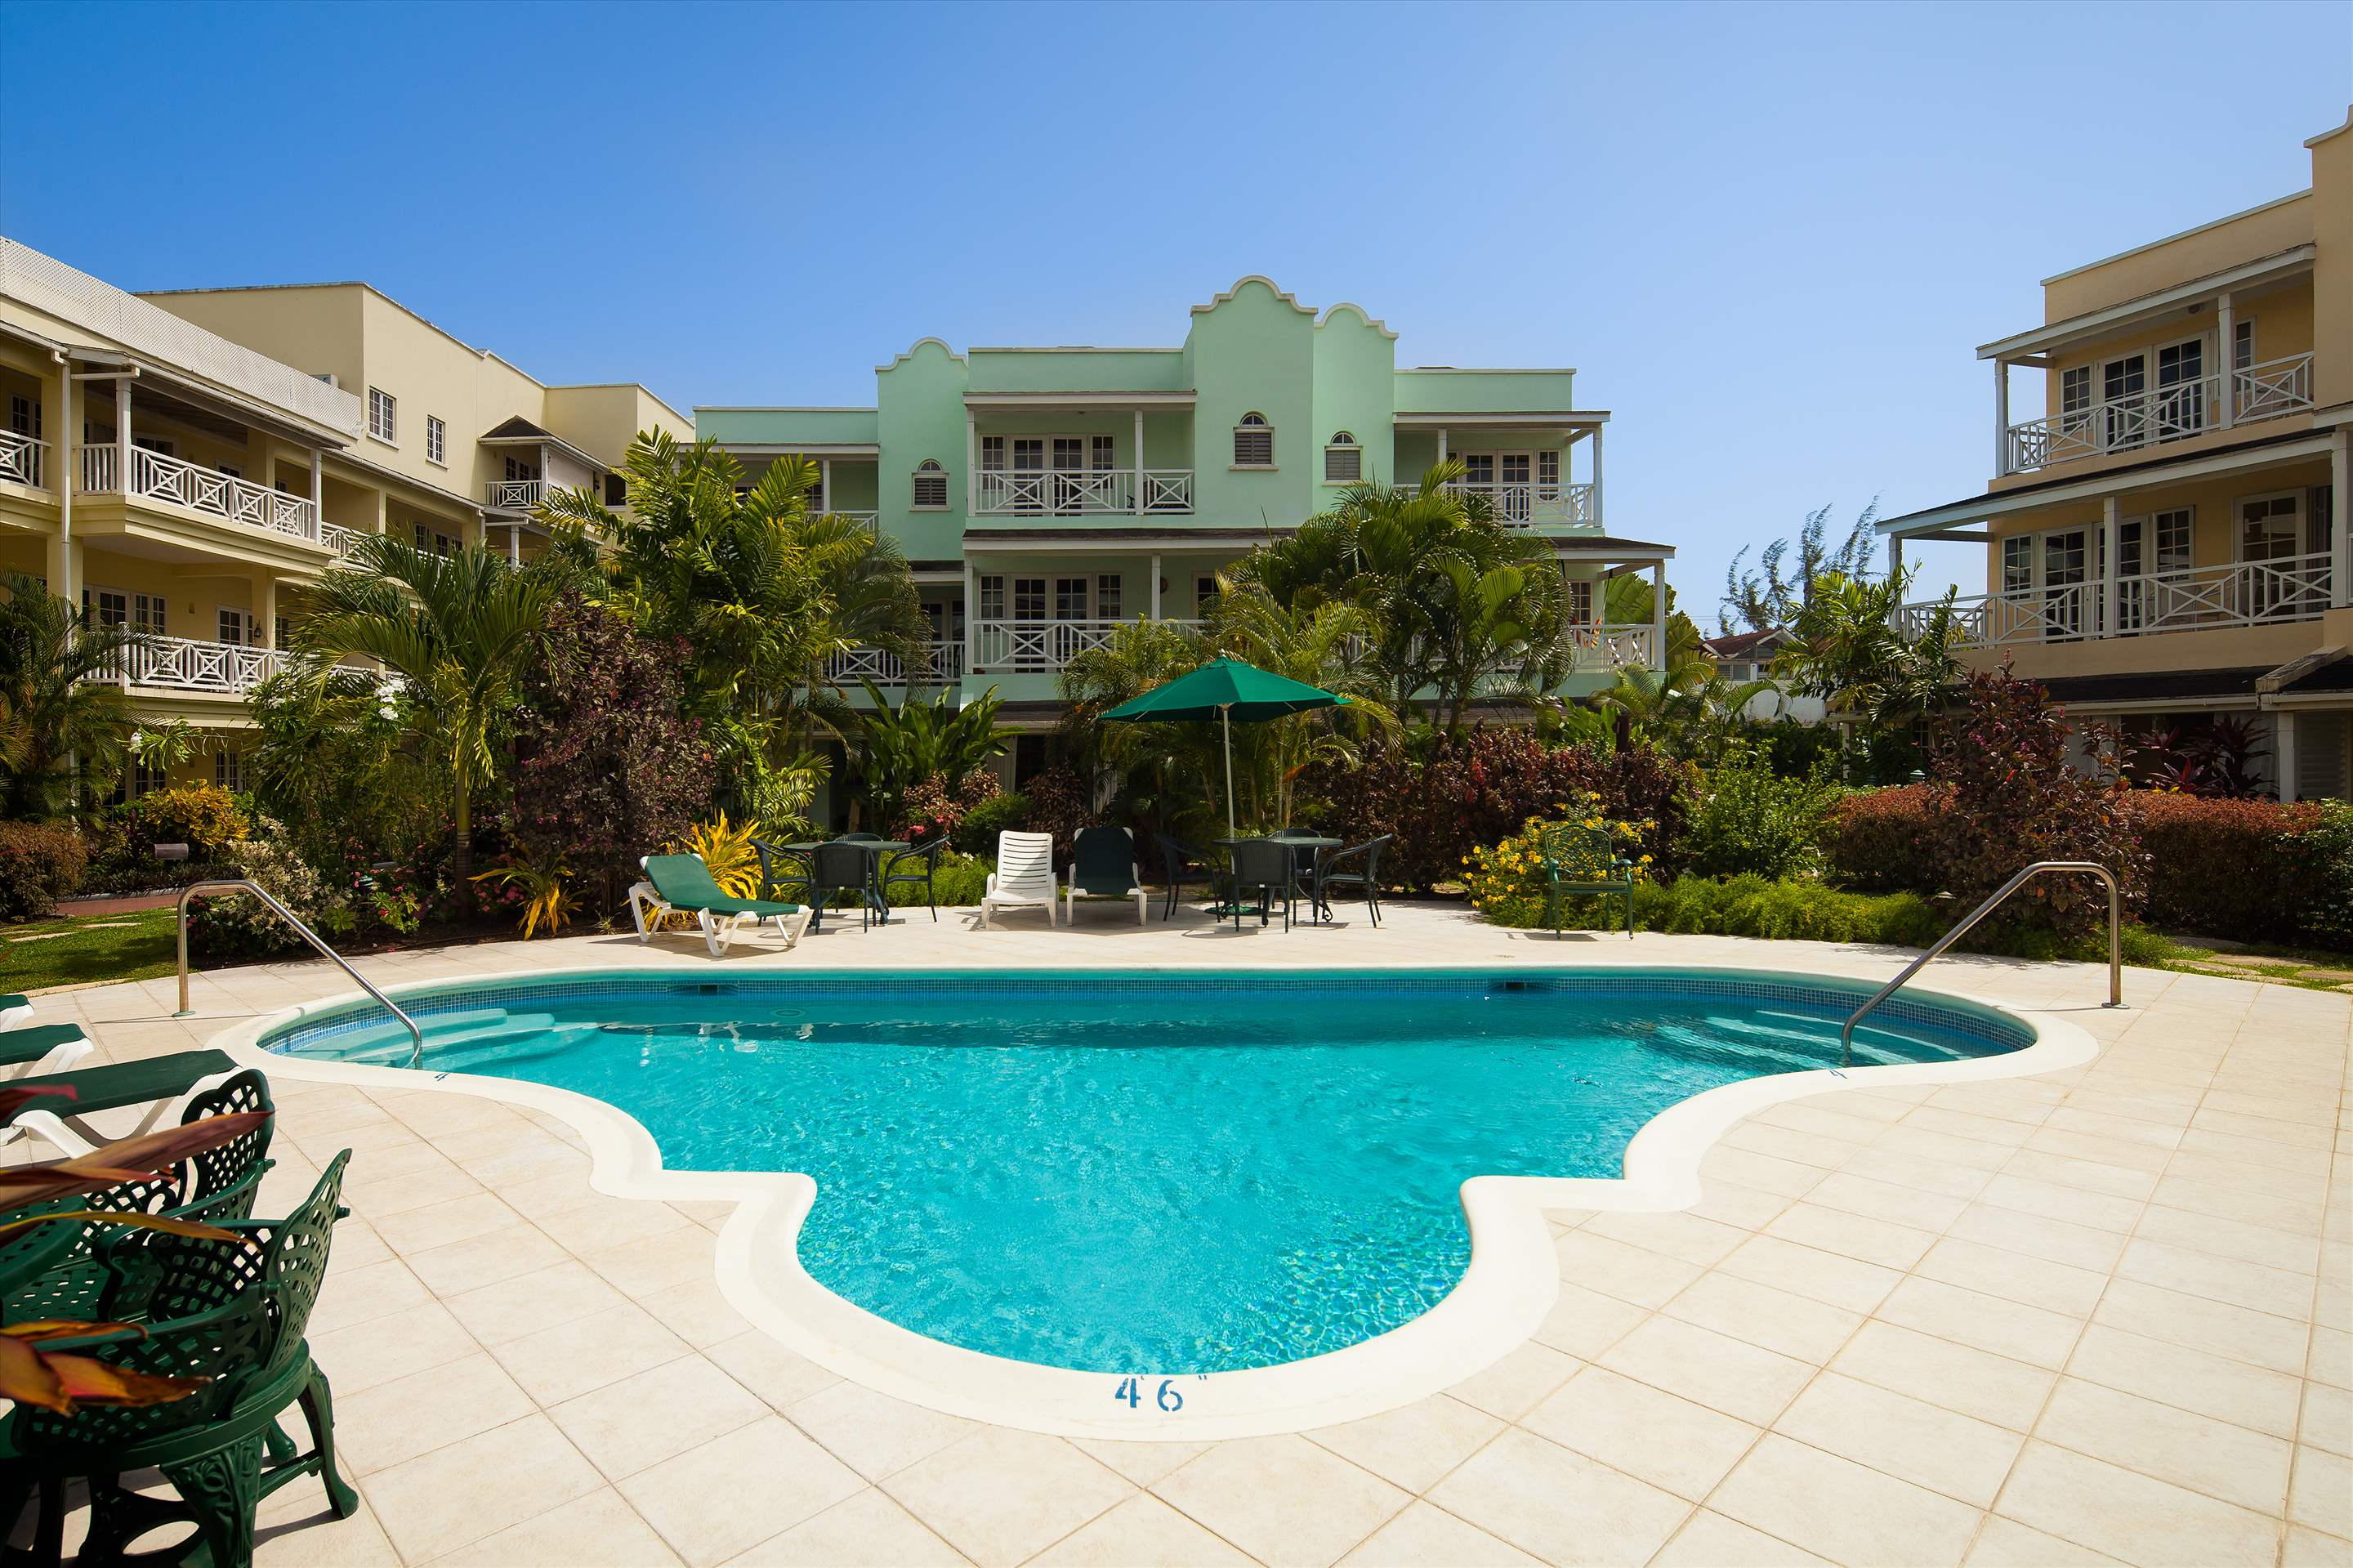 Margate Gardens 4, 3 bedroom, 3 bedroom apartment in St. Lawrence Gap & South Coast, Barbados Photo #1